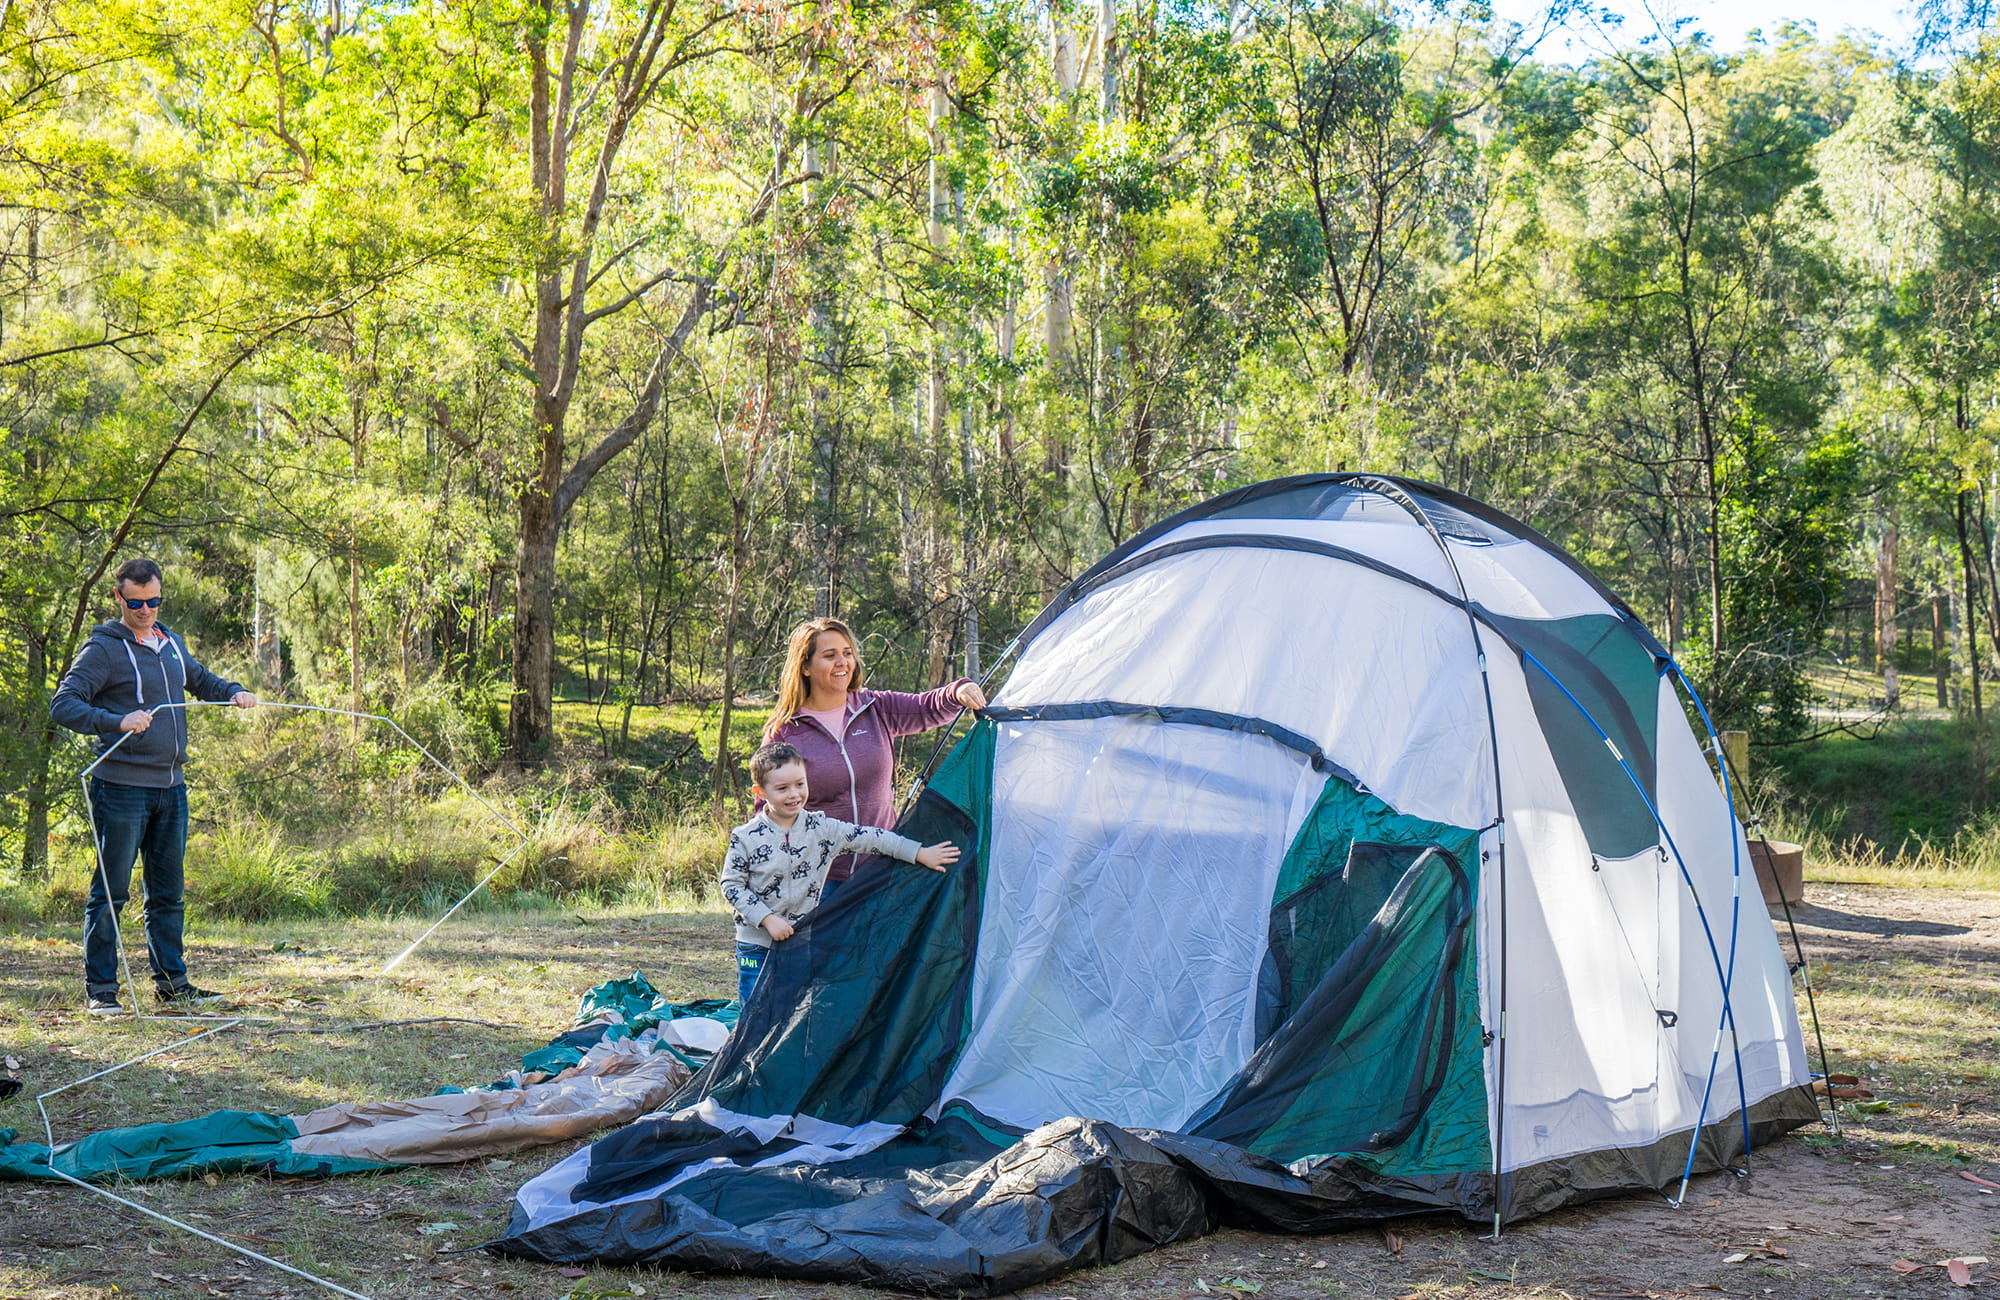 Man pitching a tent at Euroka campground near Glenbook in the lower Blue Mountains. Photo: OEH/Simone Cottrell